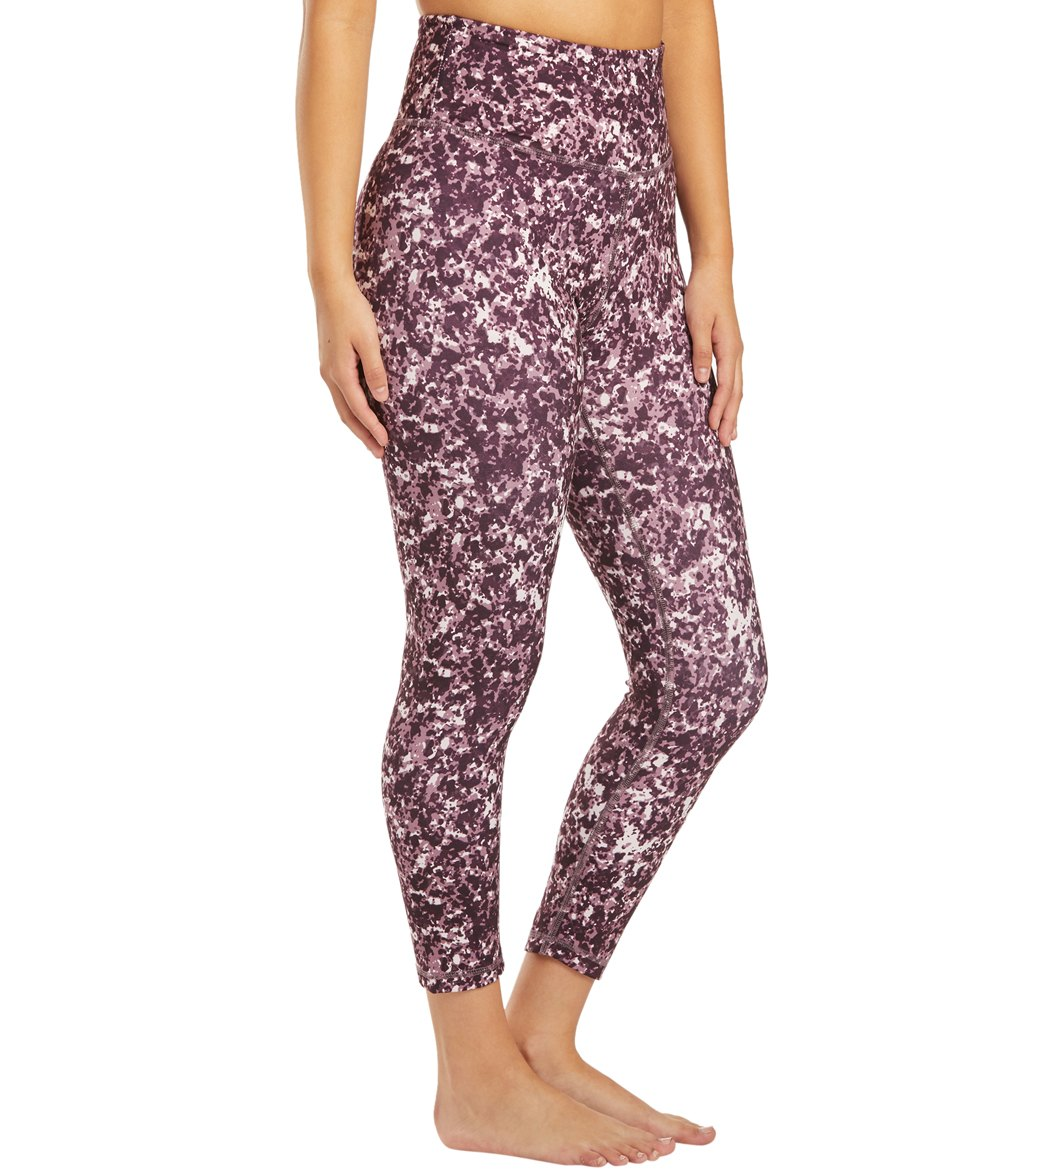 Balance Collection Opatek Lux High Waisted Printed Yoga Capri Pants - Speckle Black Plum Marble Cotton